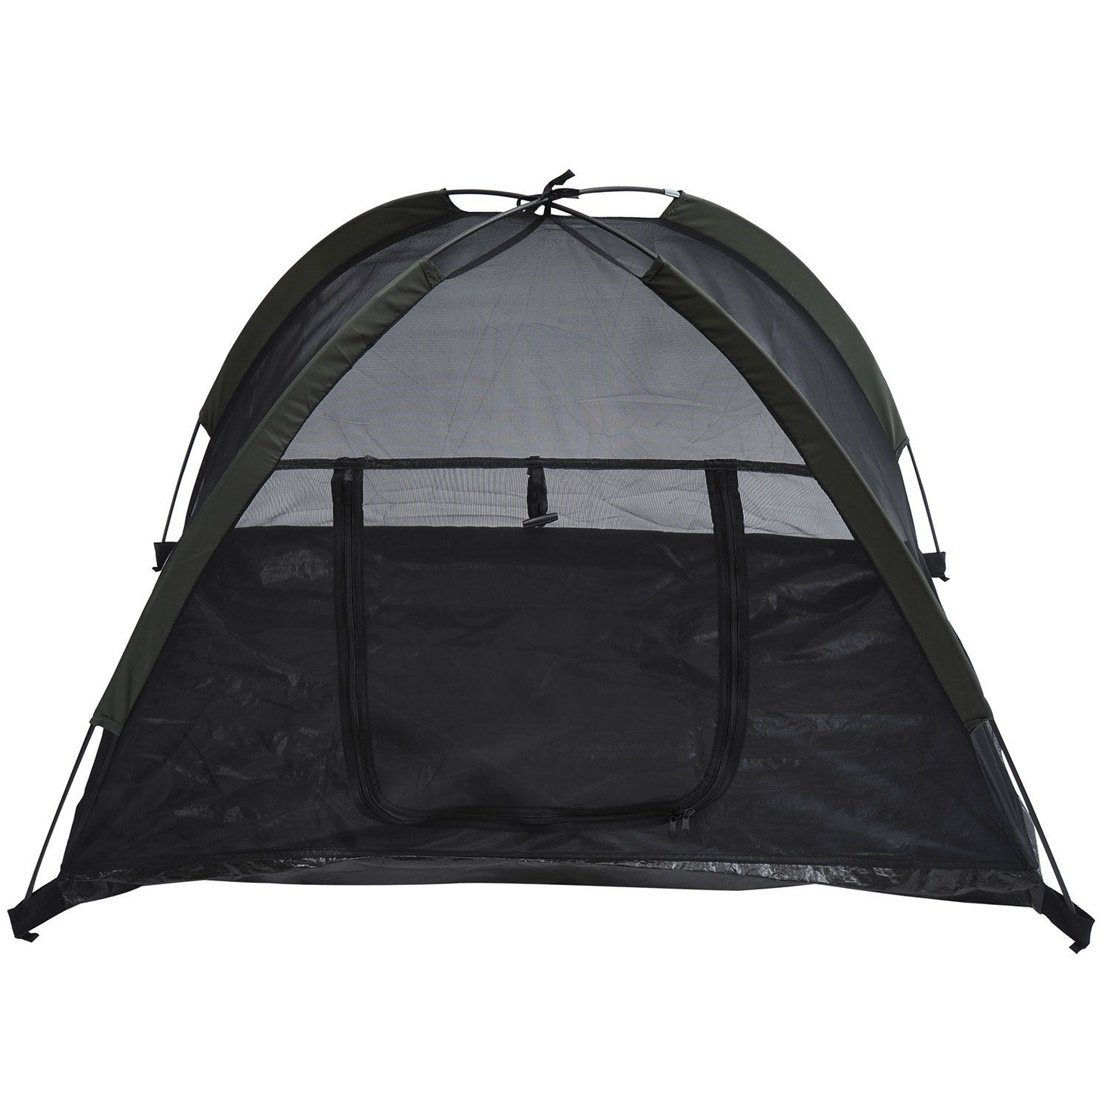 1Pcs Apogee Popular Pet Tent House Sleeping Couch Puppy Outdoor Camp Cat Beach Shelter Color Black